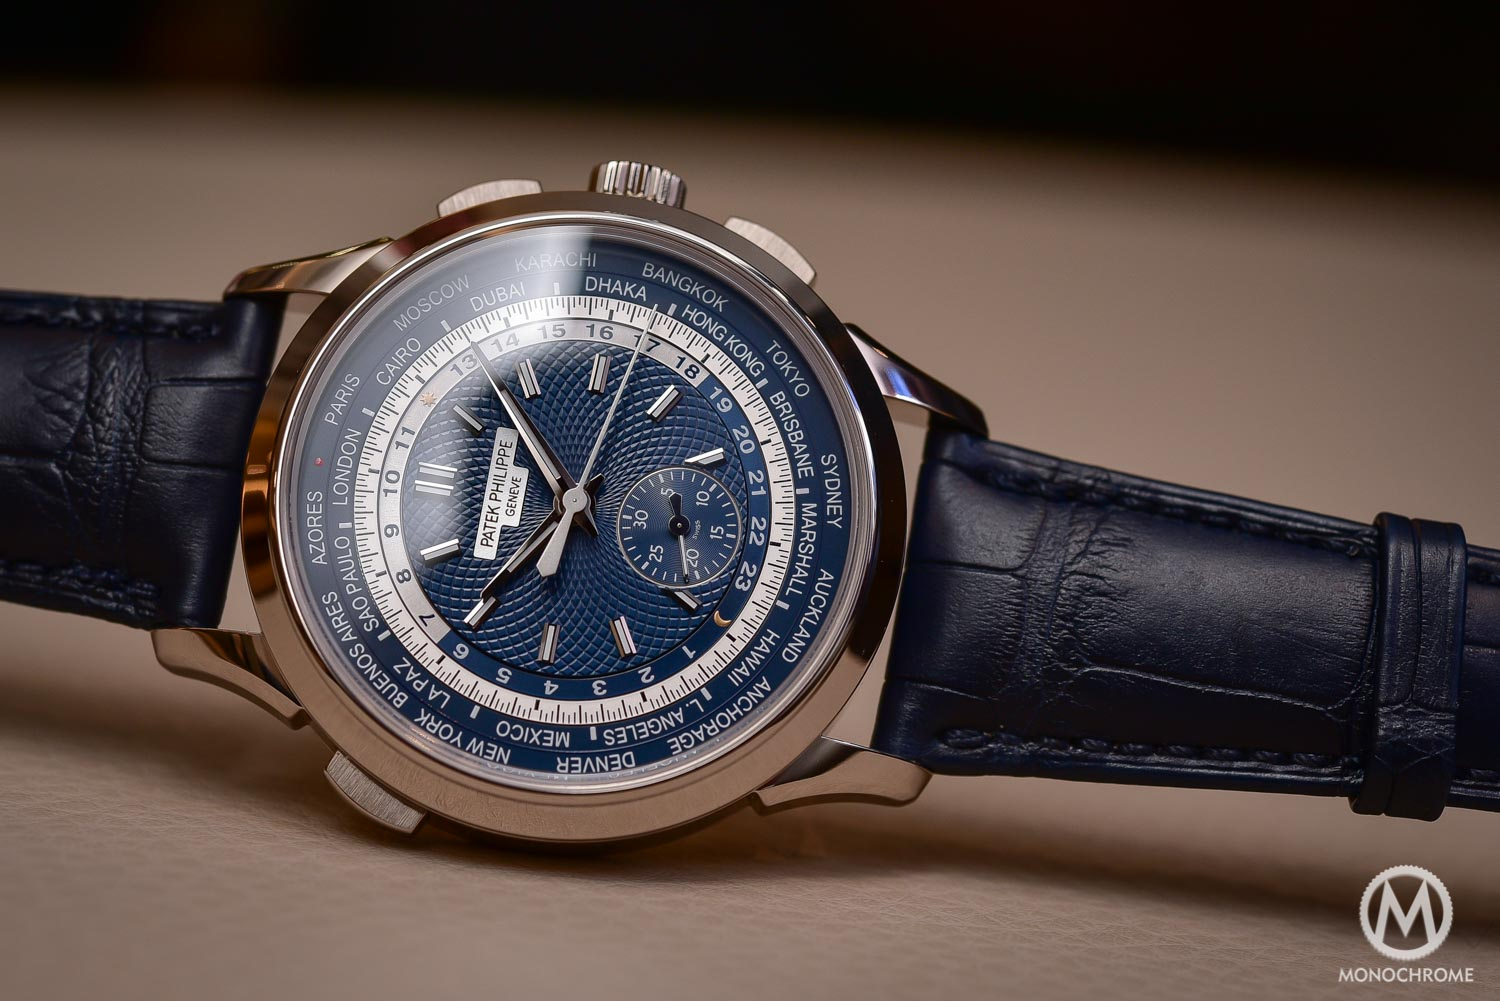 Top 5 Watches from Baselworld 2016 - Patek-Philippe-5930g-World-Timer-Chronograph-Baselworld-2016-1